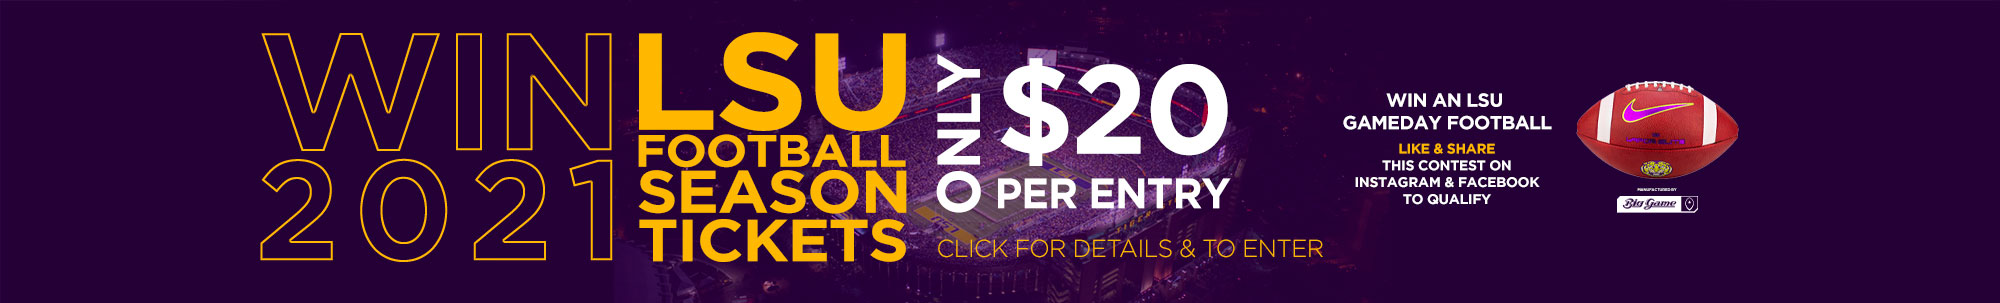 WIN 2021 LSU FOOTBALL SEASON TICKETS